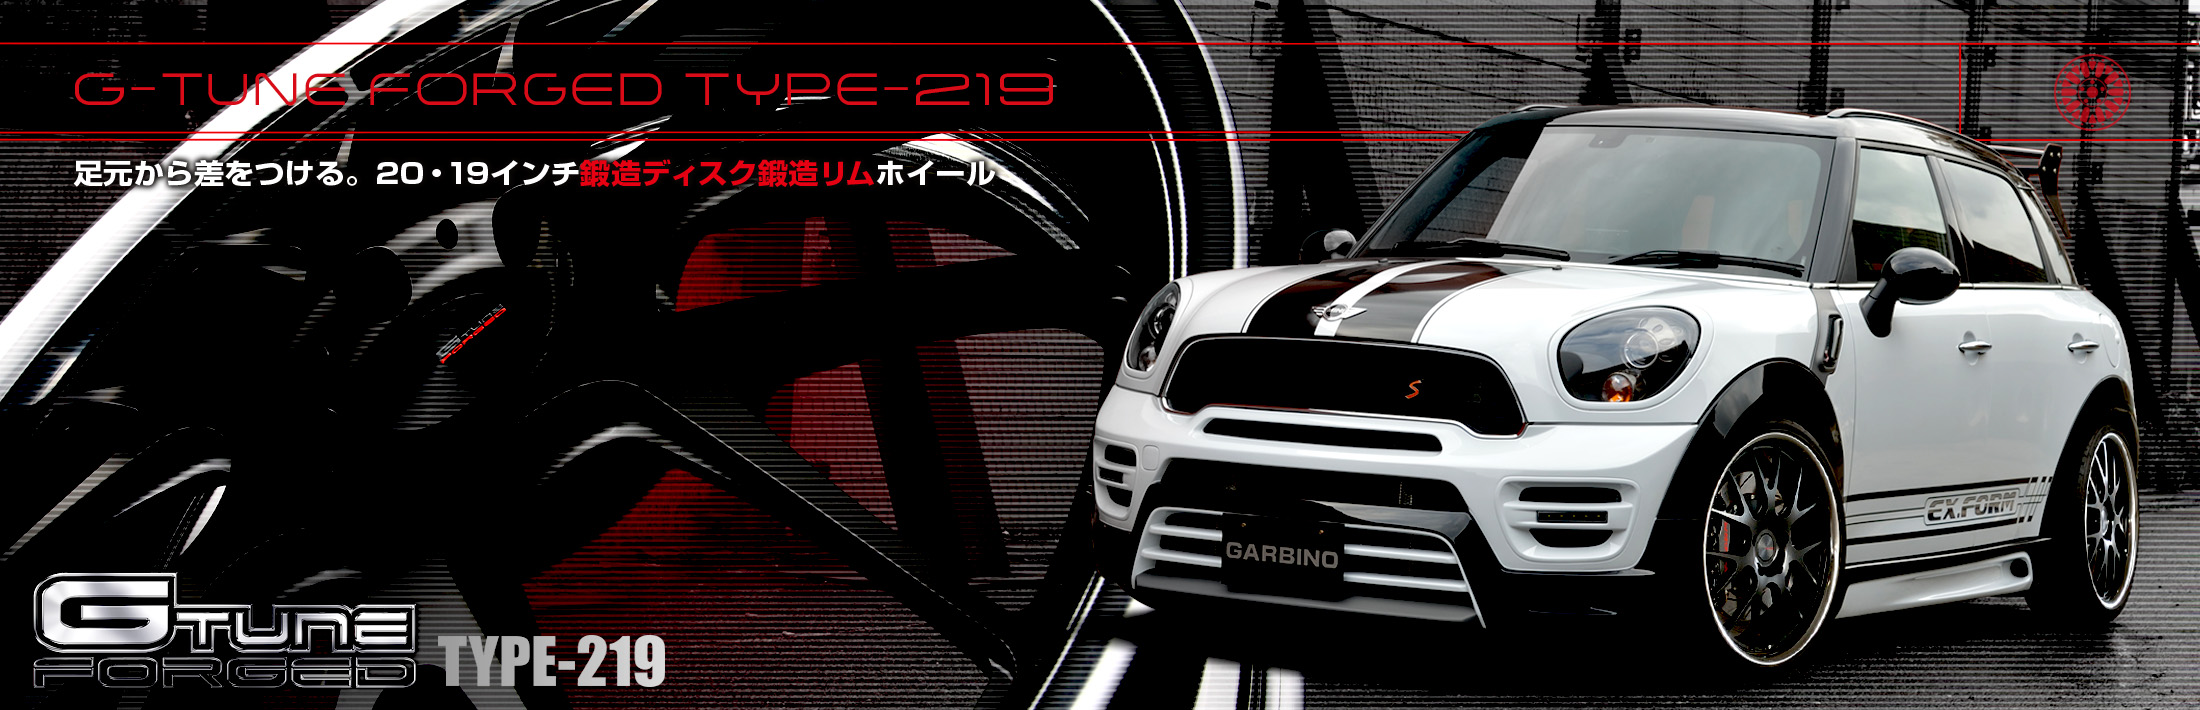 WHEEL_G-TUNE FORGED TYPE219